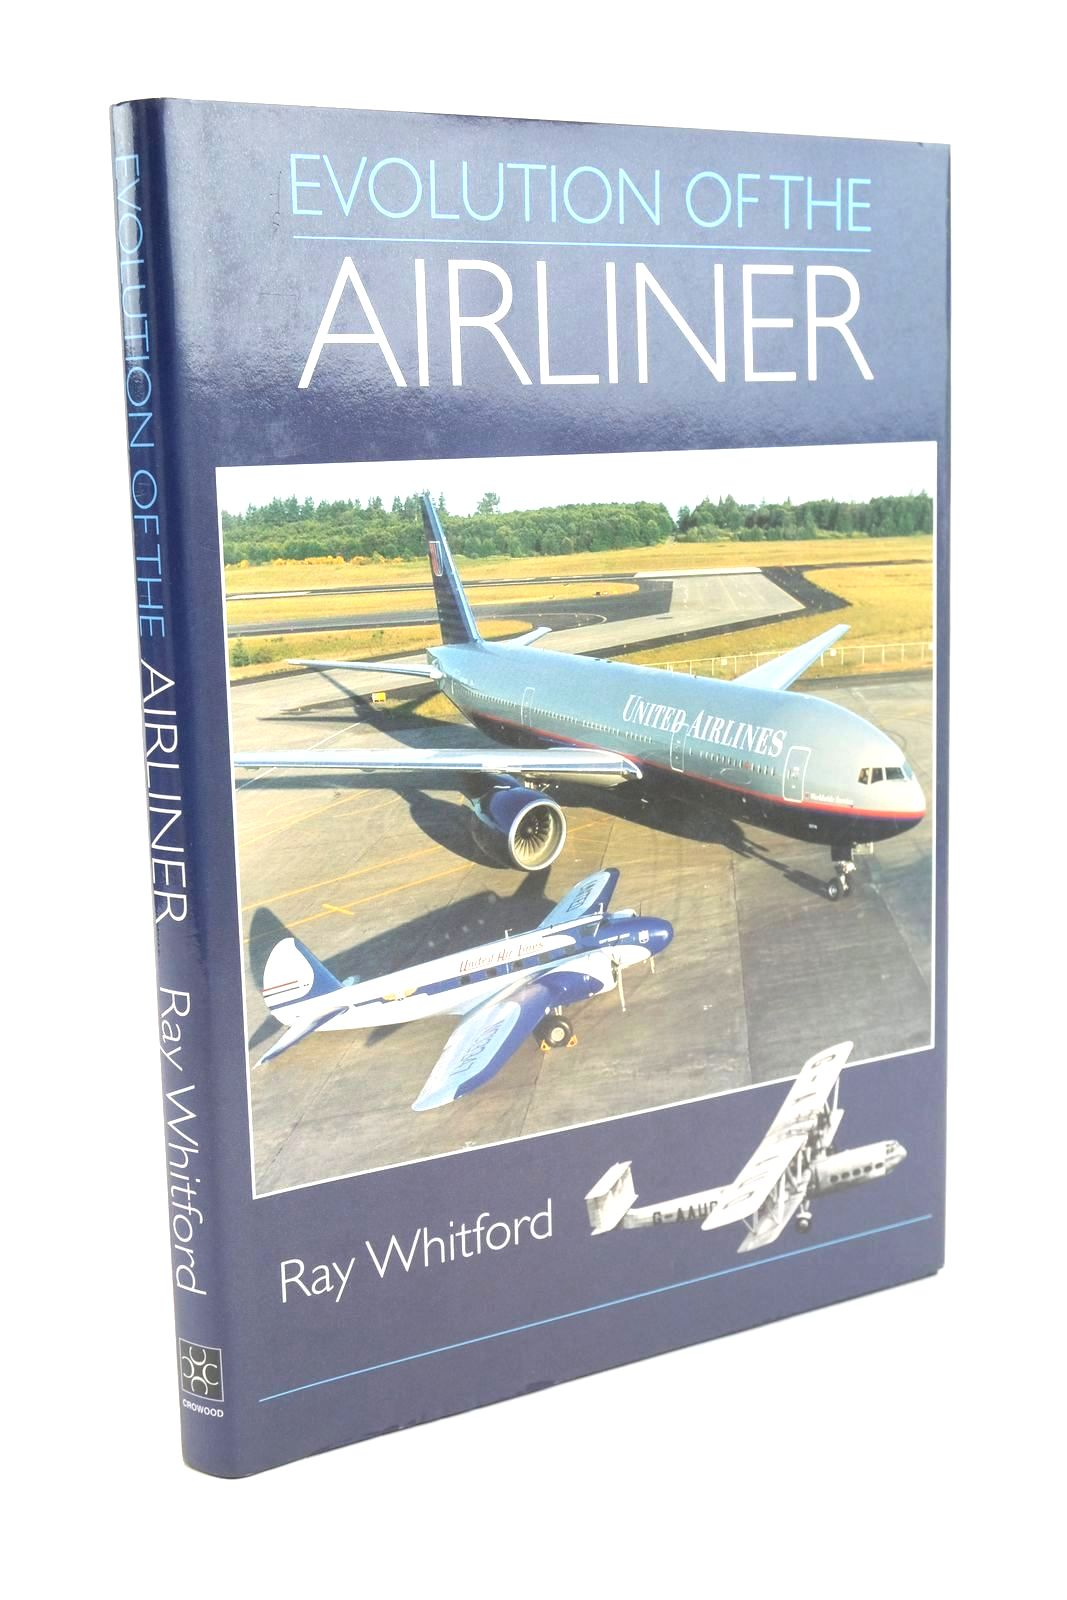 Photo of EVOLUTION OF THE AIRLINER written by Whitford, Ray published by The Crowood Press (STOCK CODE: 1320144)  for sale by Stella & Rose's Books